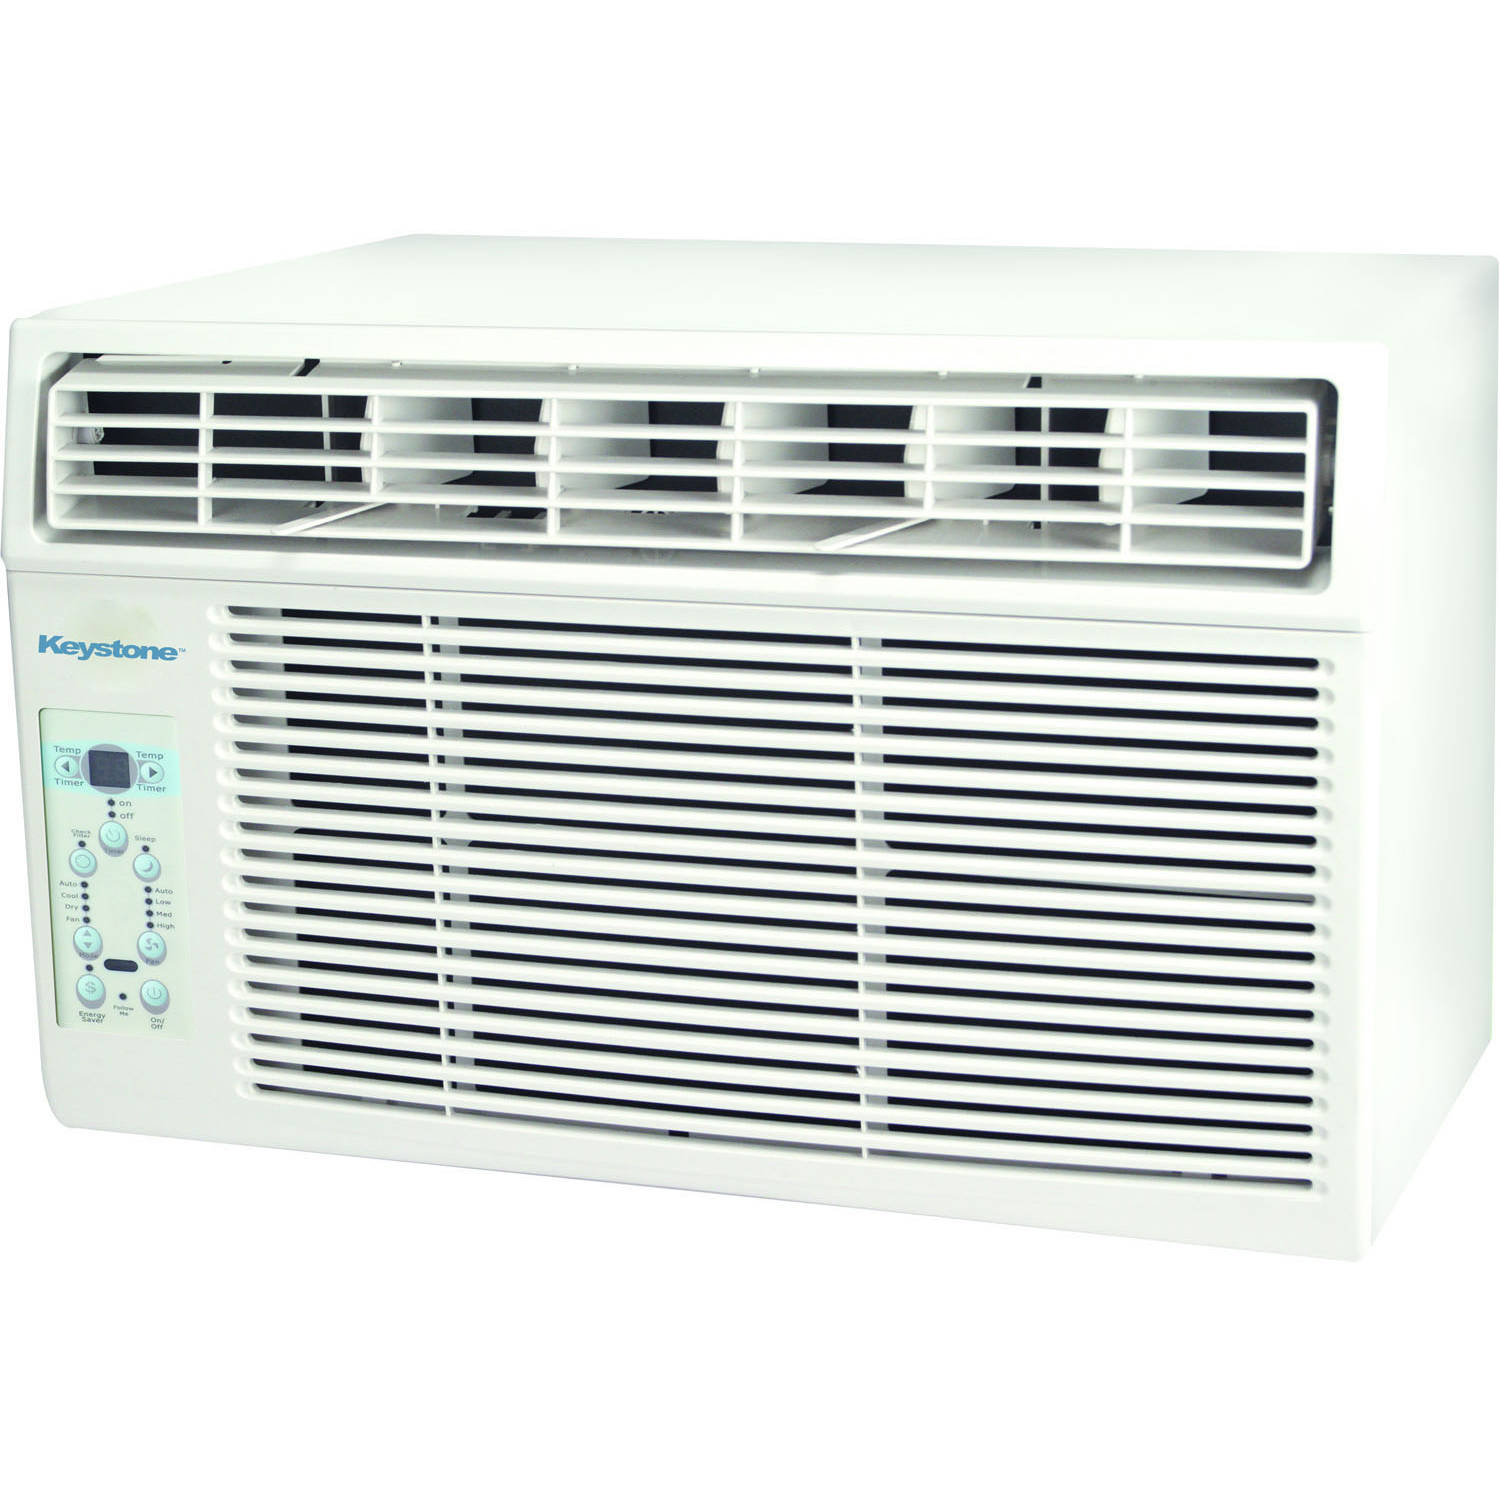 "Keystone KSTAW12B Energy Efficient 12,000-BTU 115V Window-Mounted Air Conditioner with ""Follow Me"" LCD Remote Control"